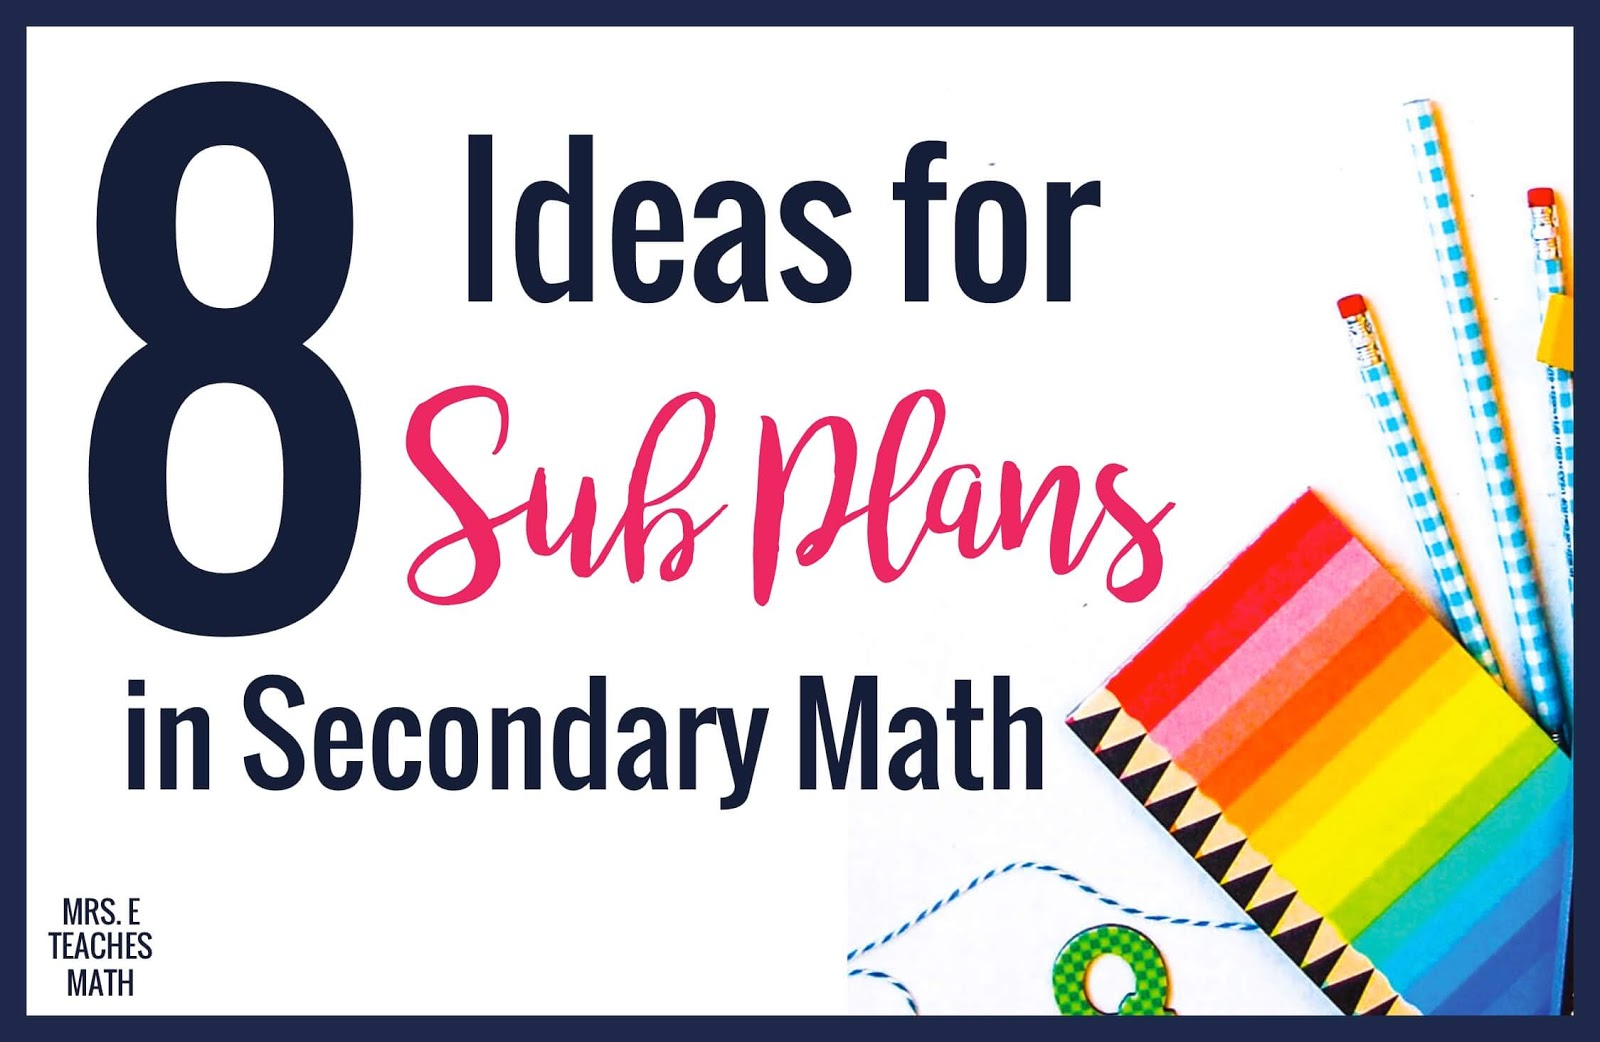 hight resolution of 8 Ideas for Sub Plans in Secondary Math   Mrs. E Teaches Math